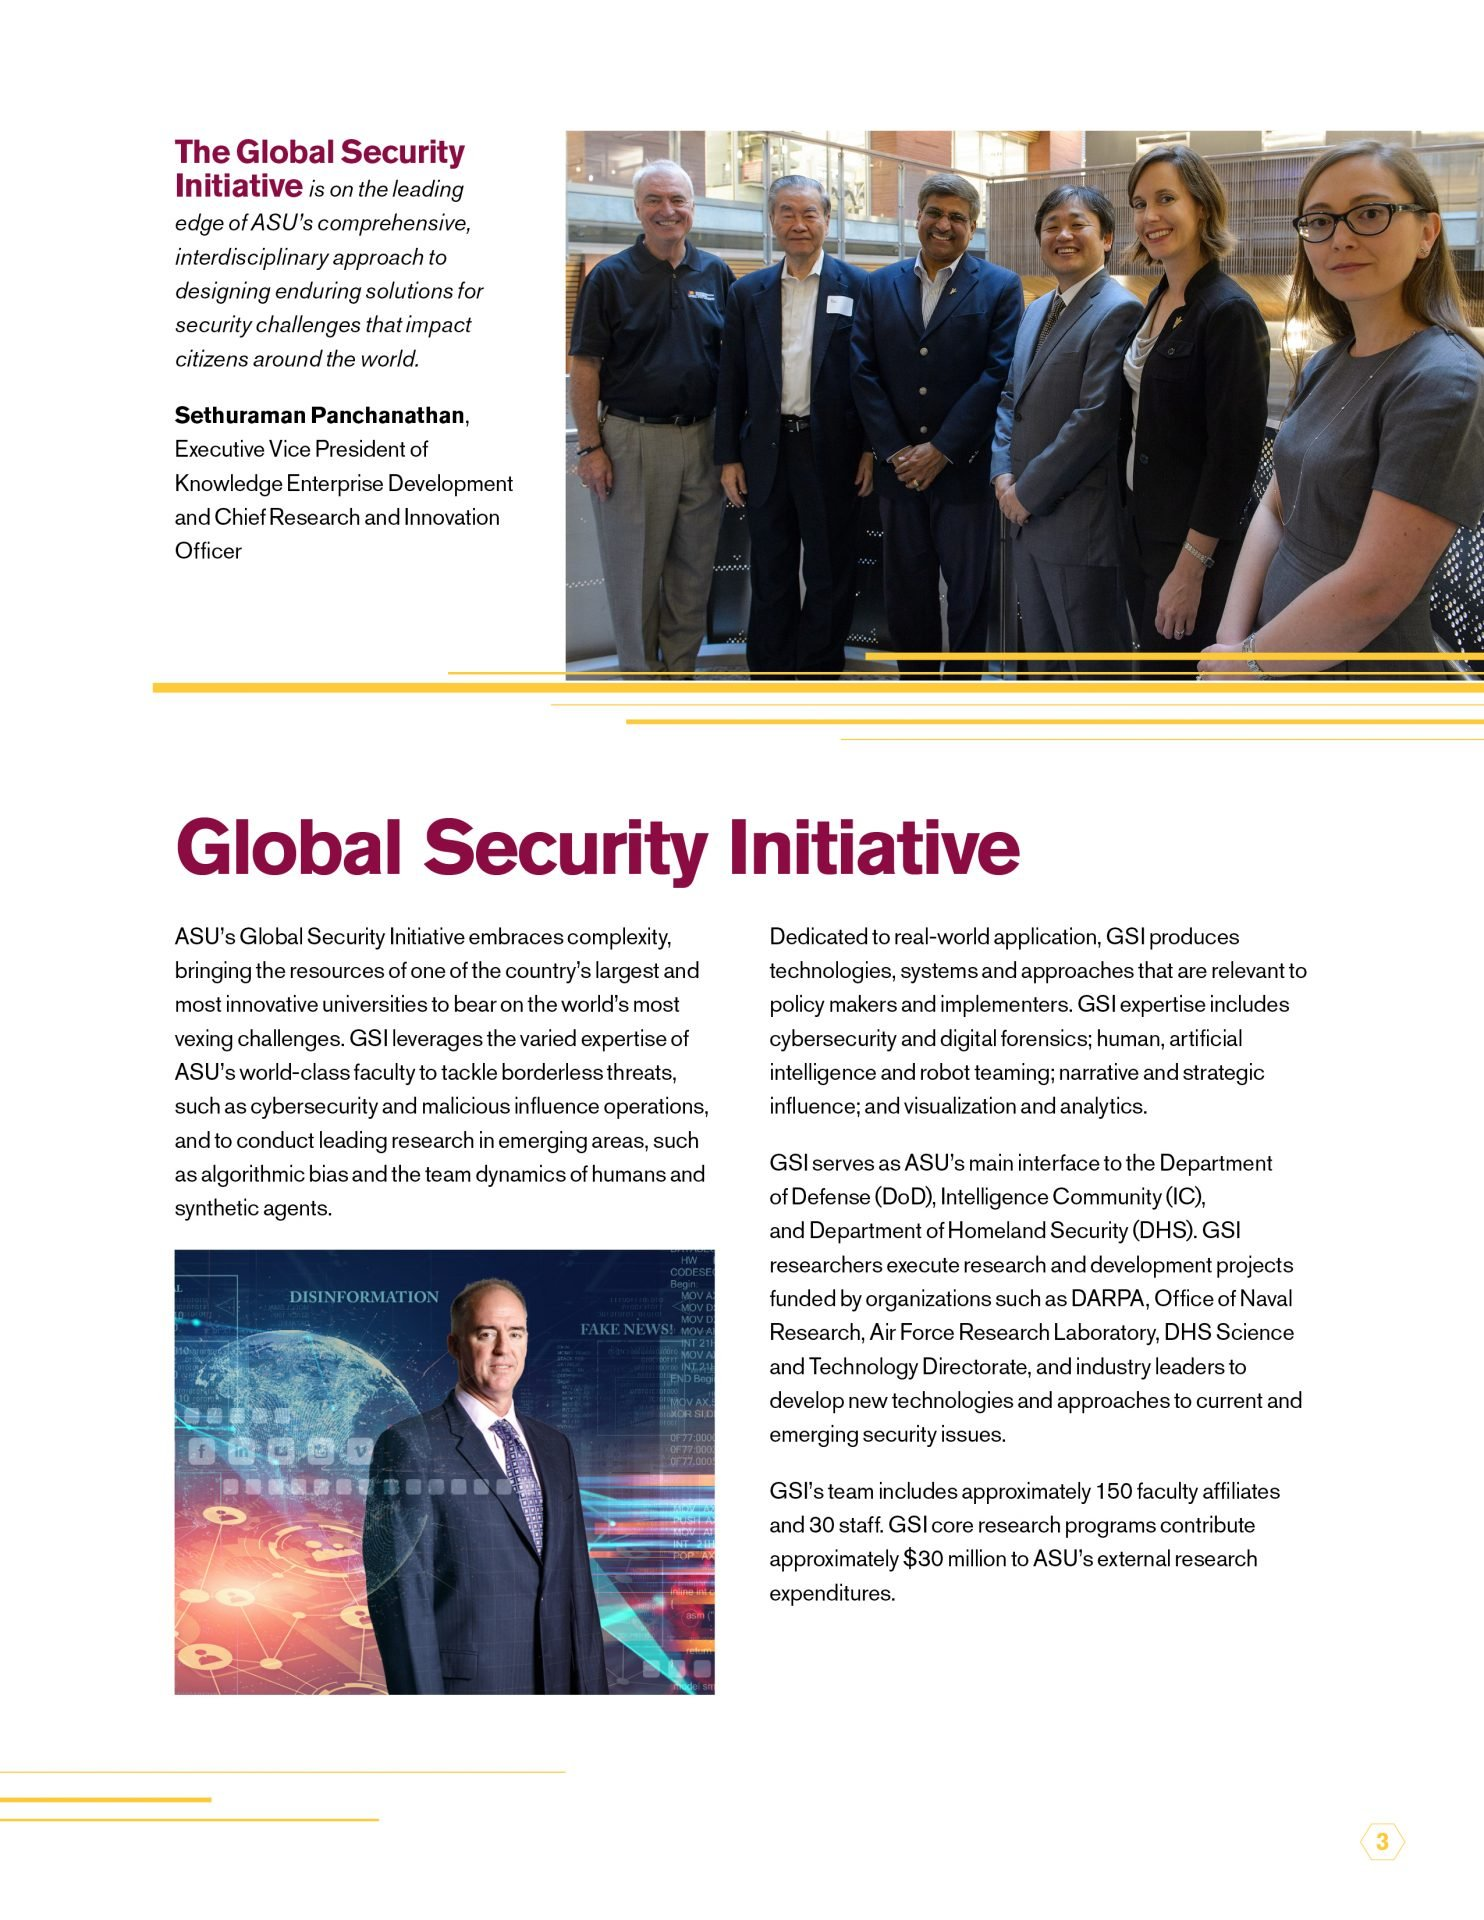 Global Security Initiative, page 3